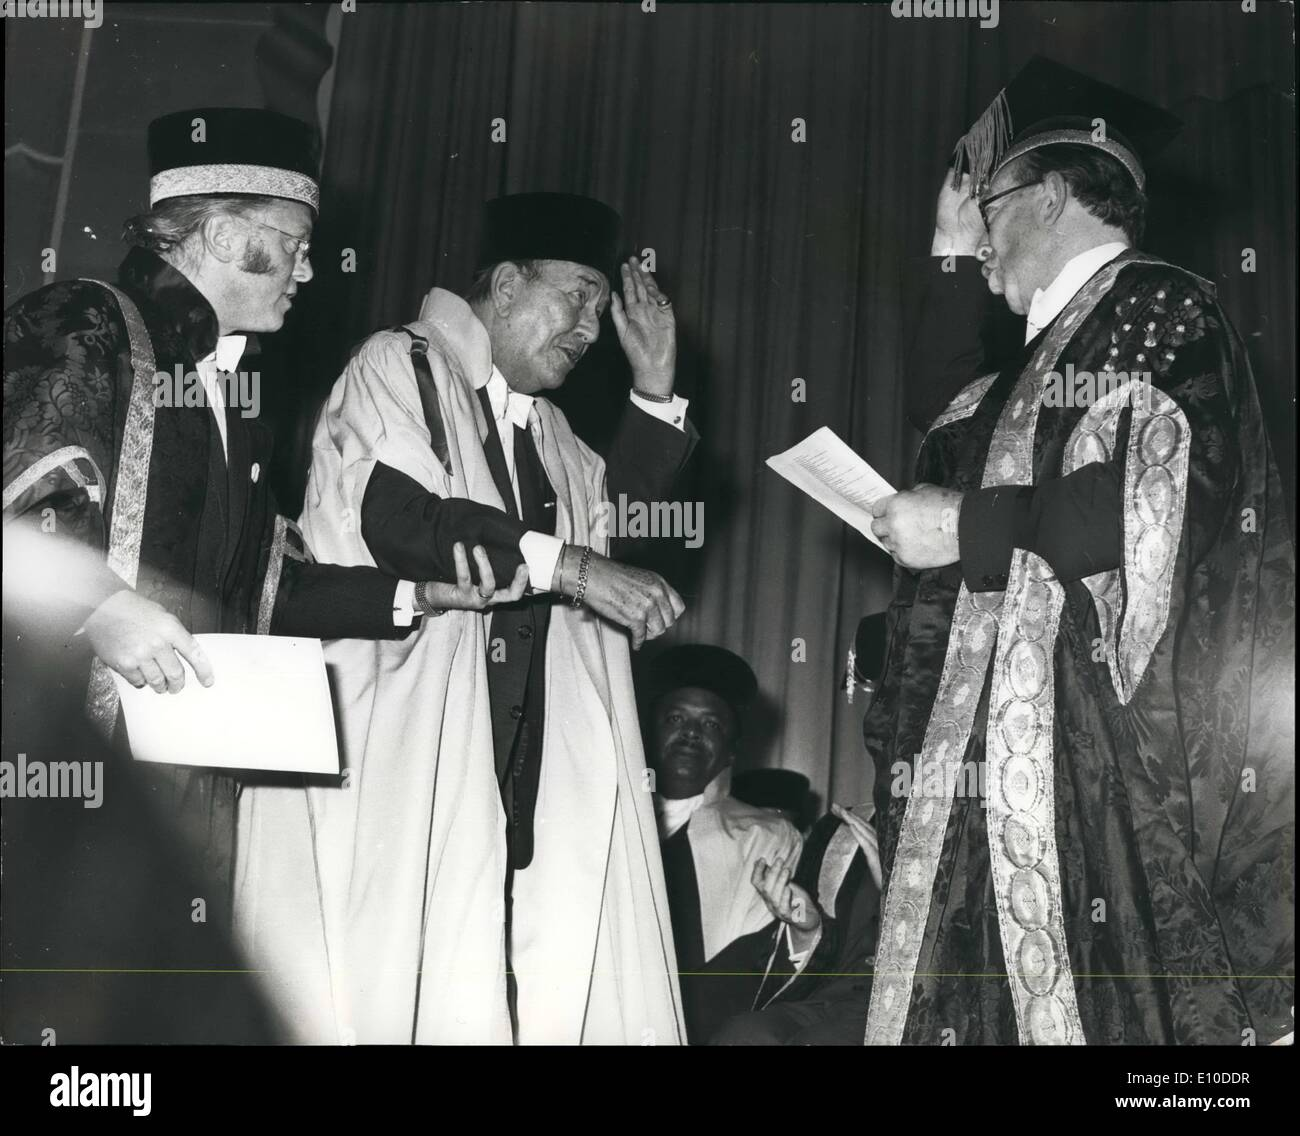 07, 1972 - Sir Noel Coward receives doctor of Letters degree at the University of Sussek.: Sir Noel Coward, one of the most distinguished figures in show ...